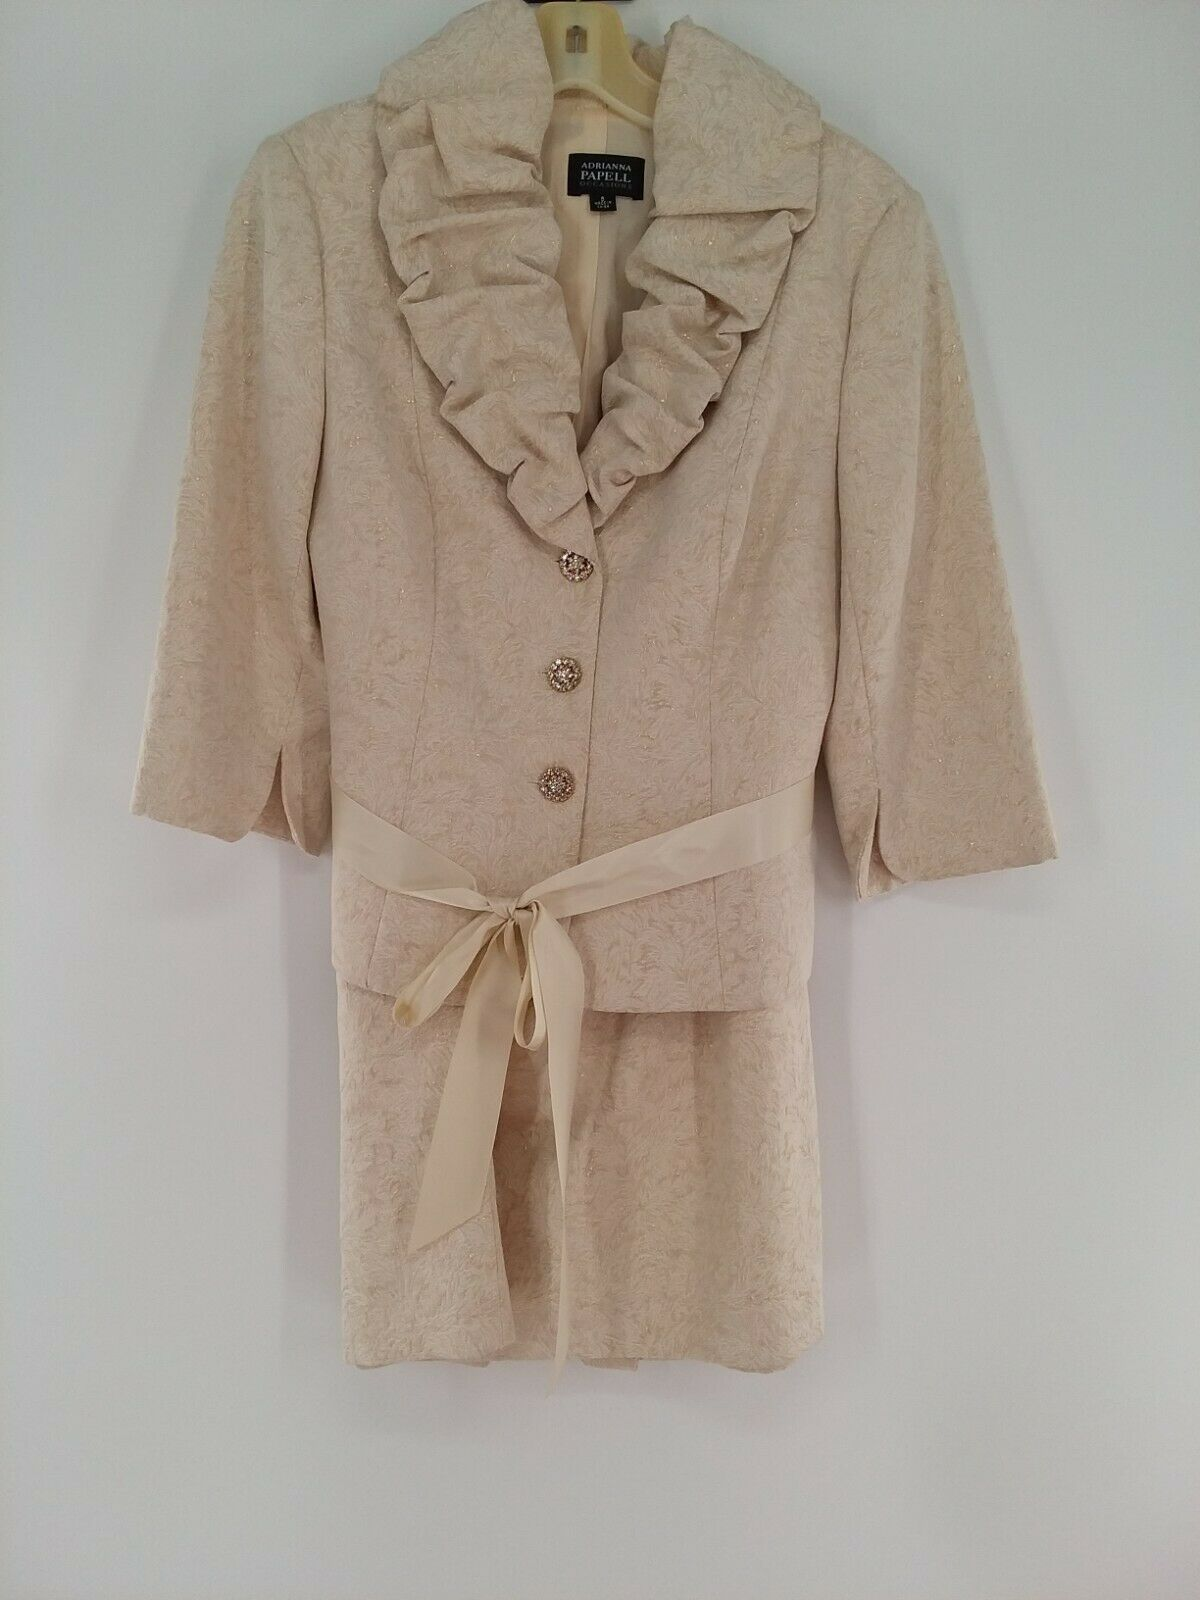 Adrianna Papell Mother of Bride Suit Size 8 Ivory with Gold